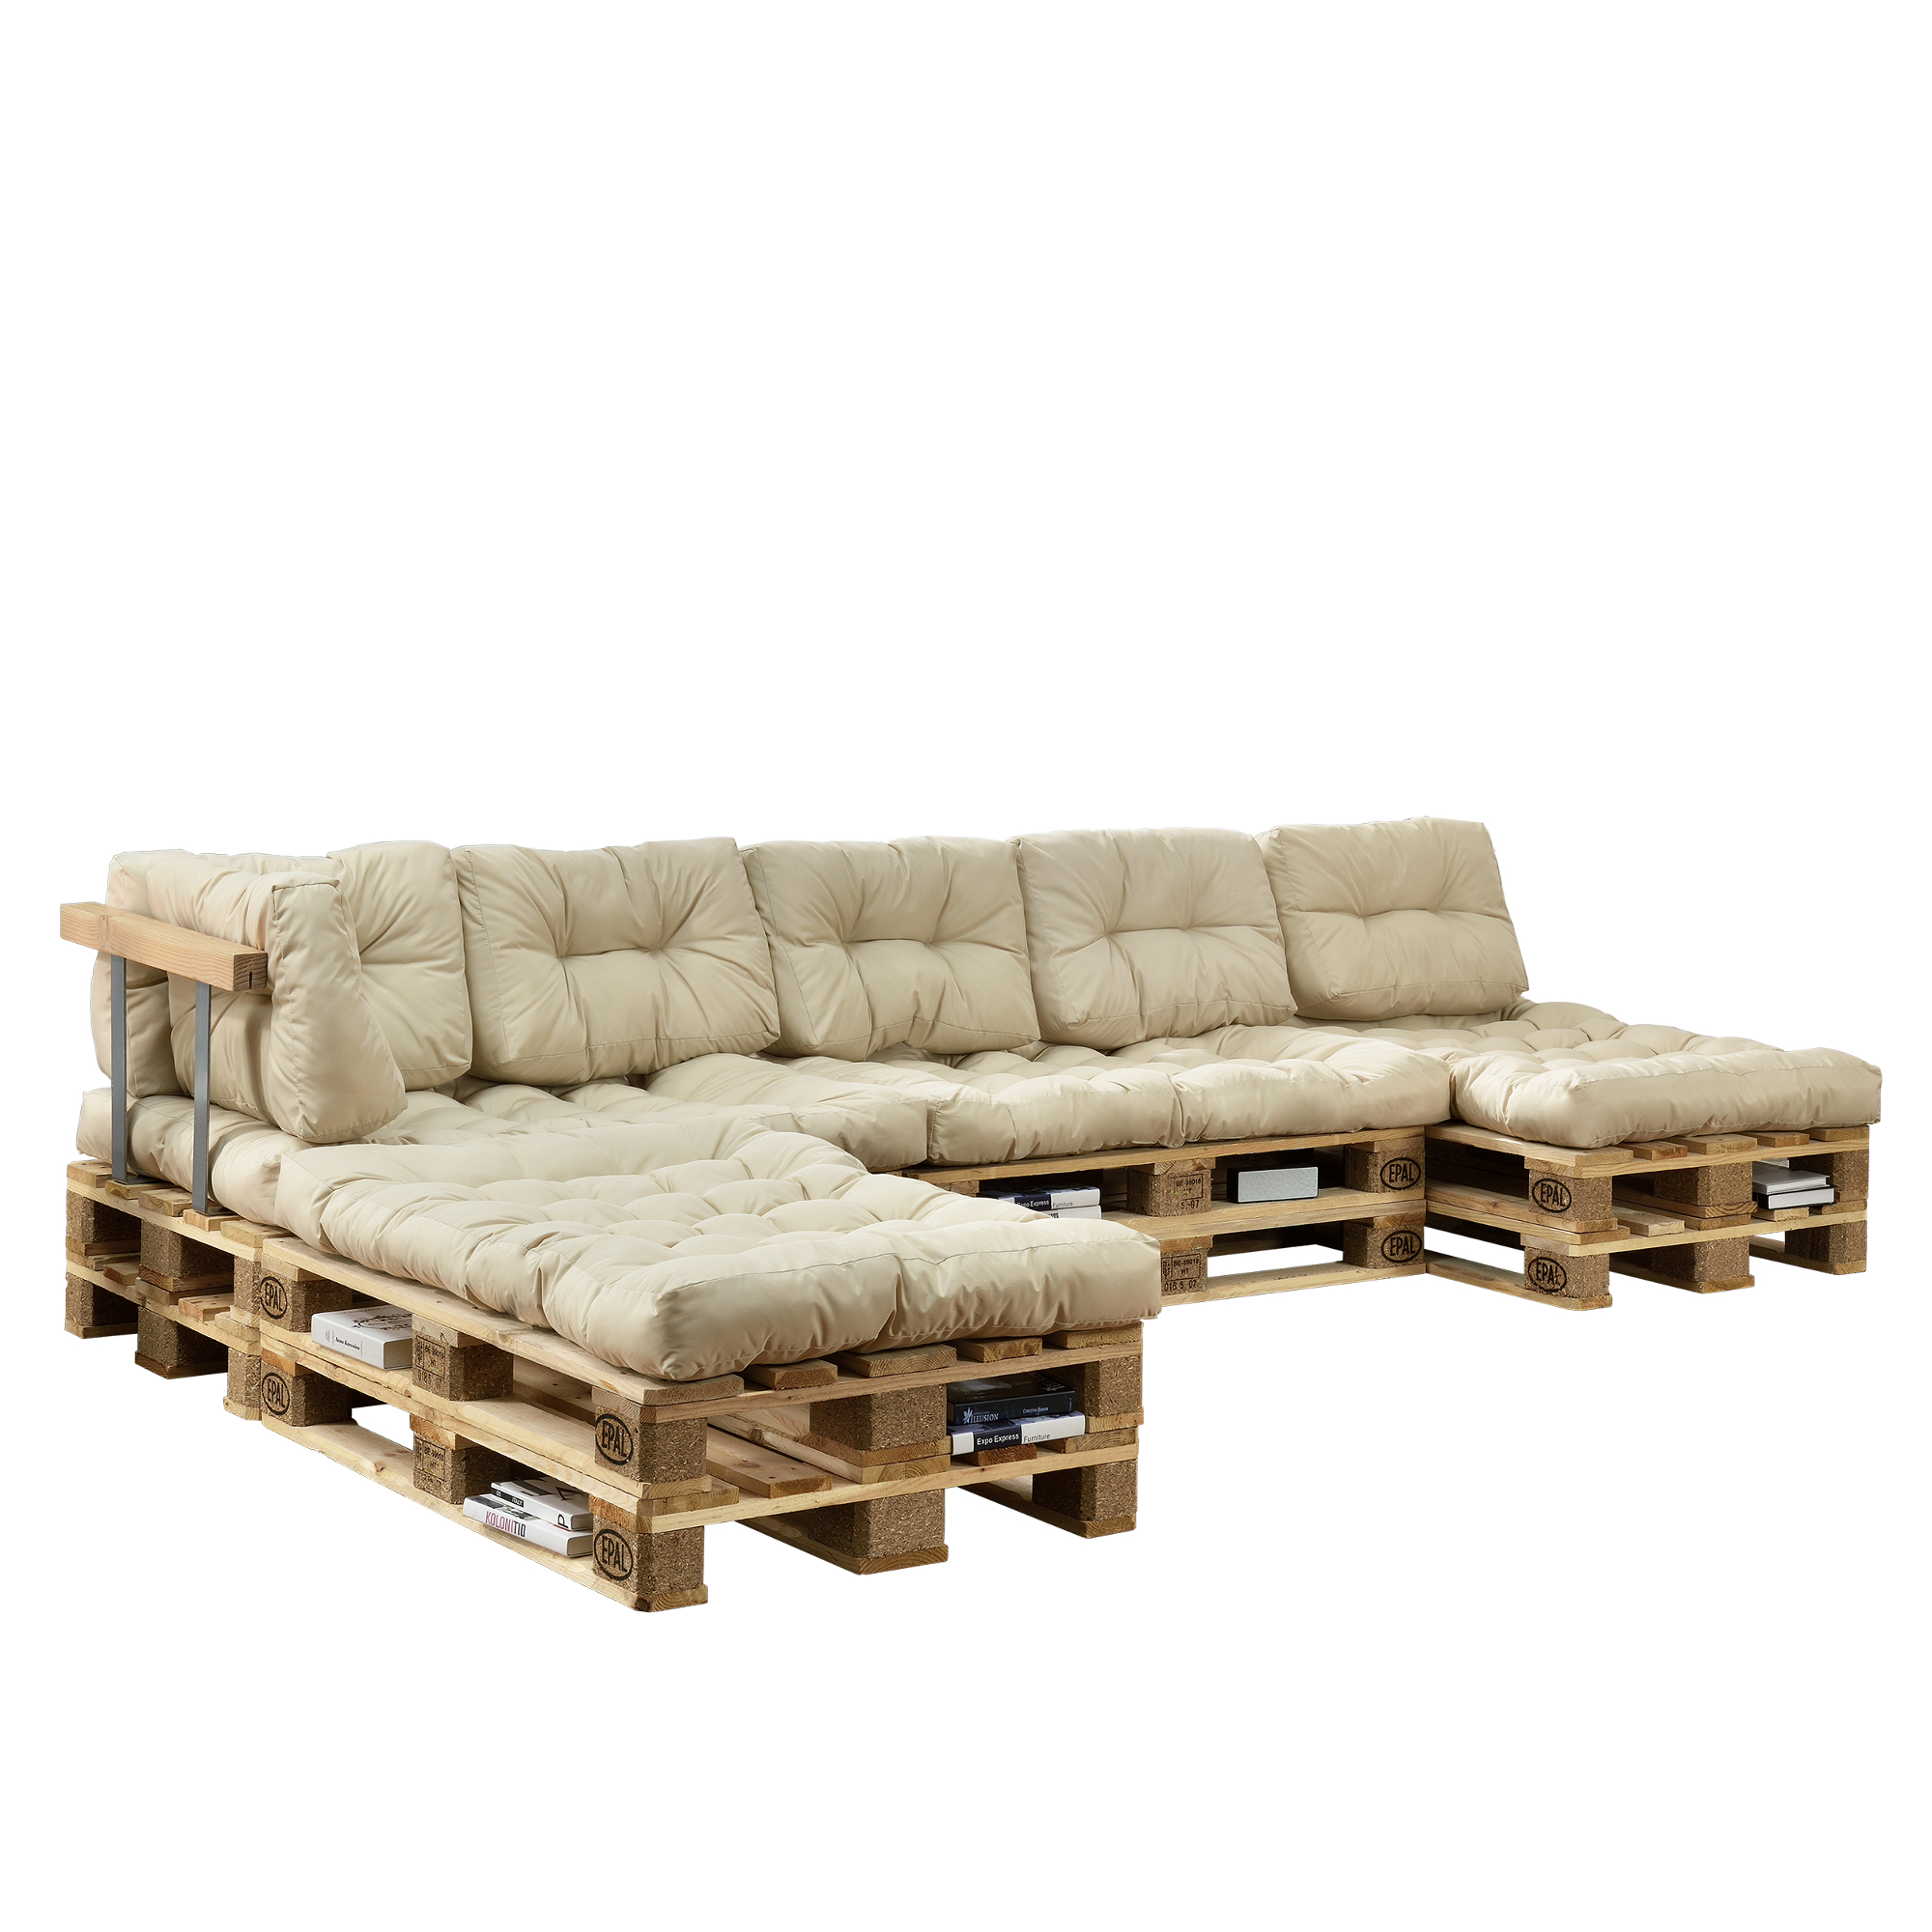 Euro Pallets Sofa Set Beige Indoor Cushion Pad Edition Seat Cushion Ebay